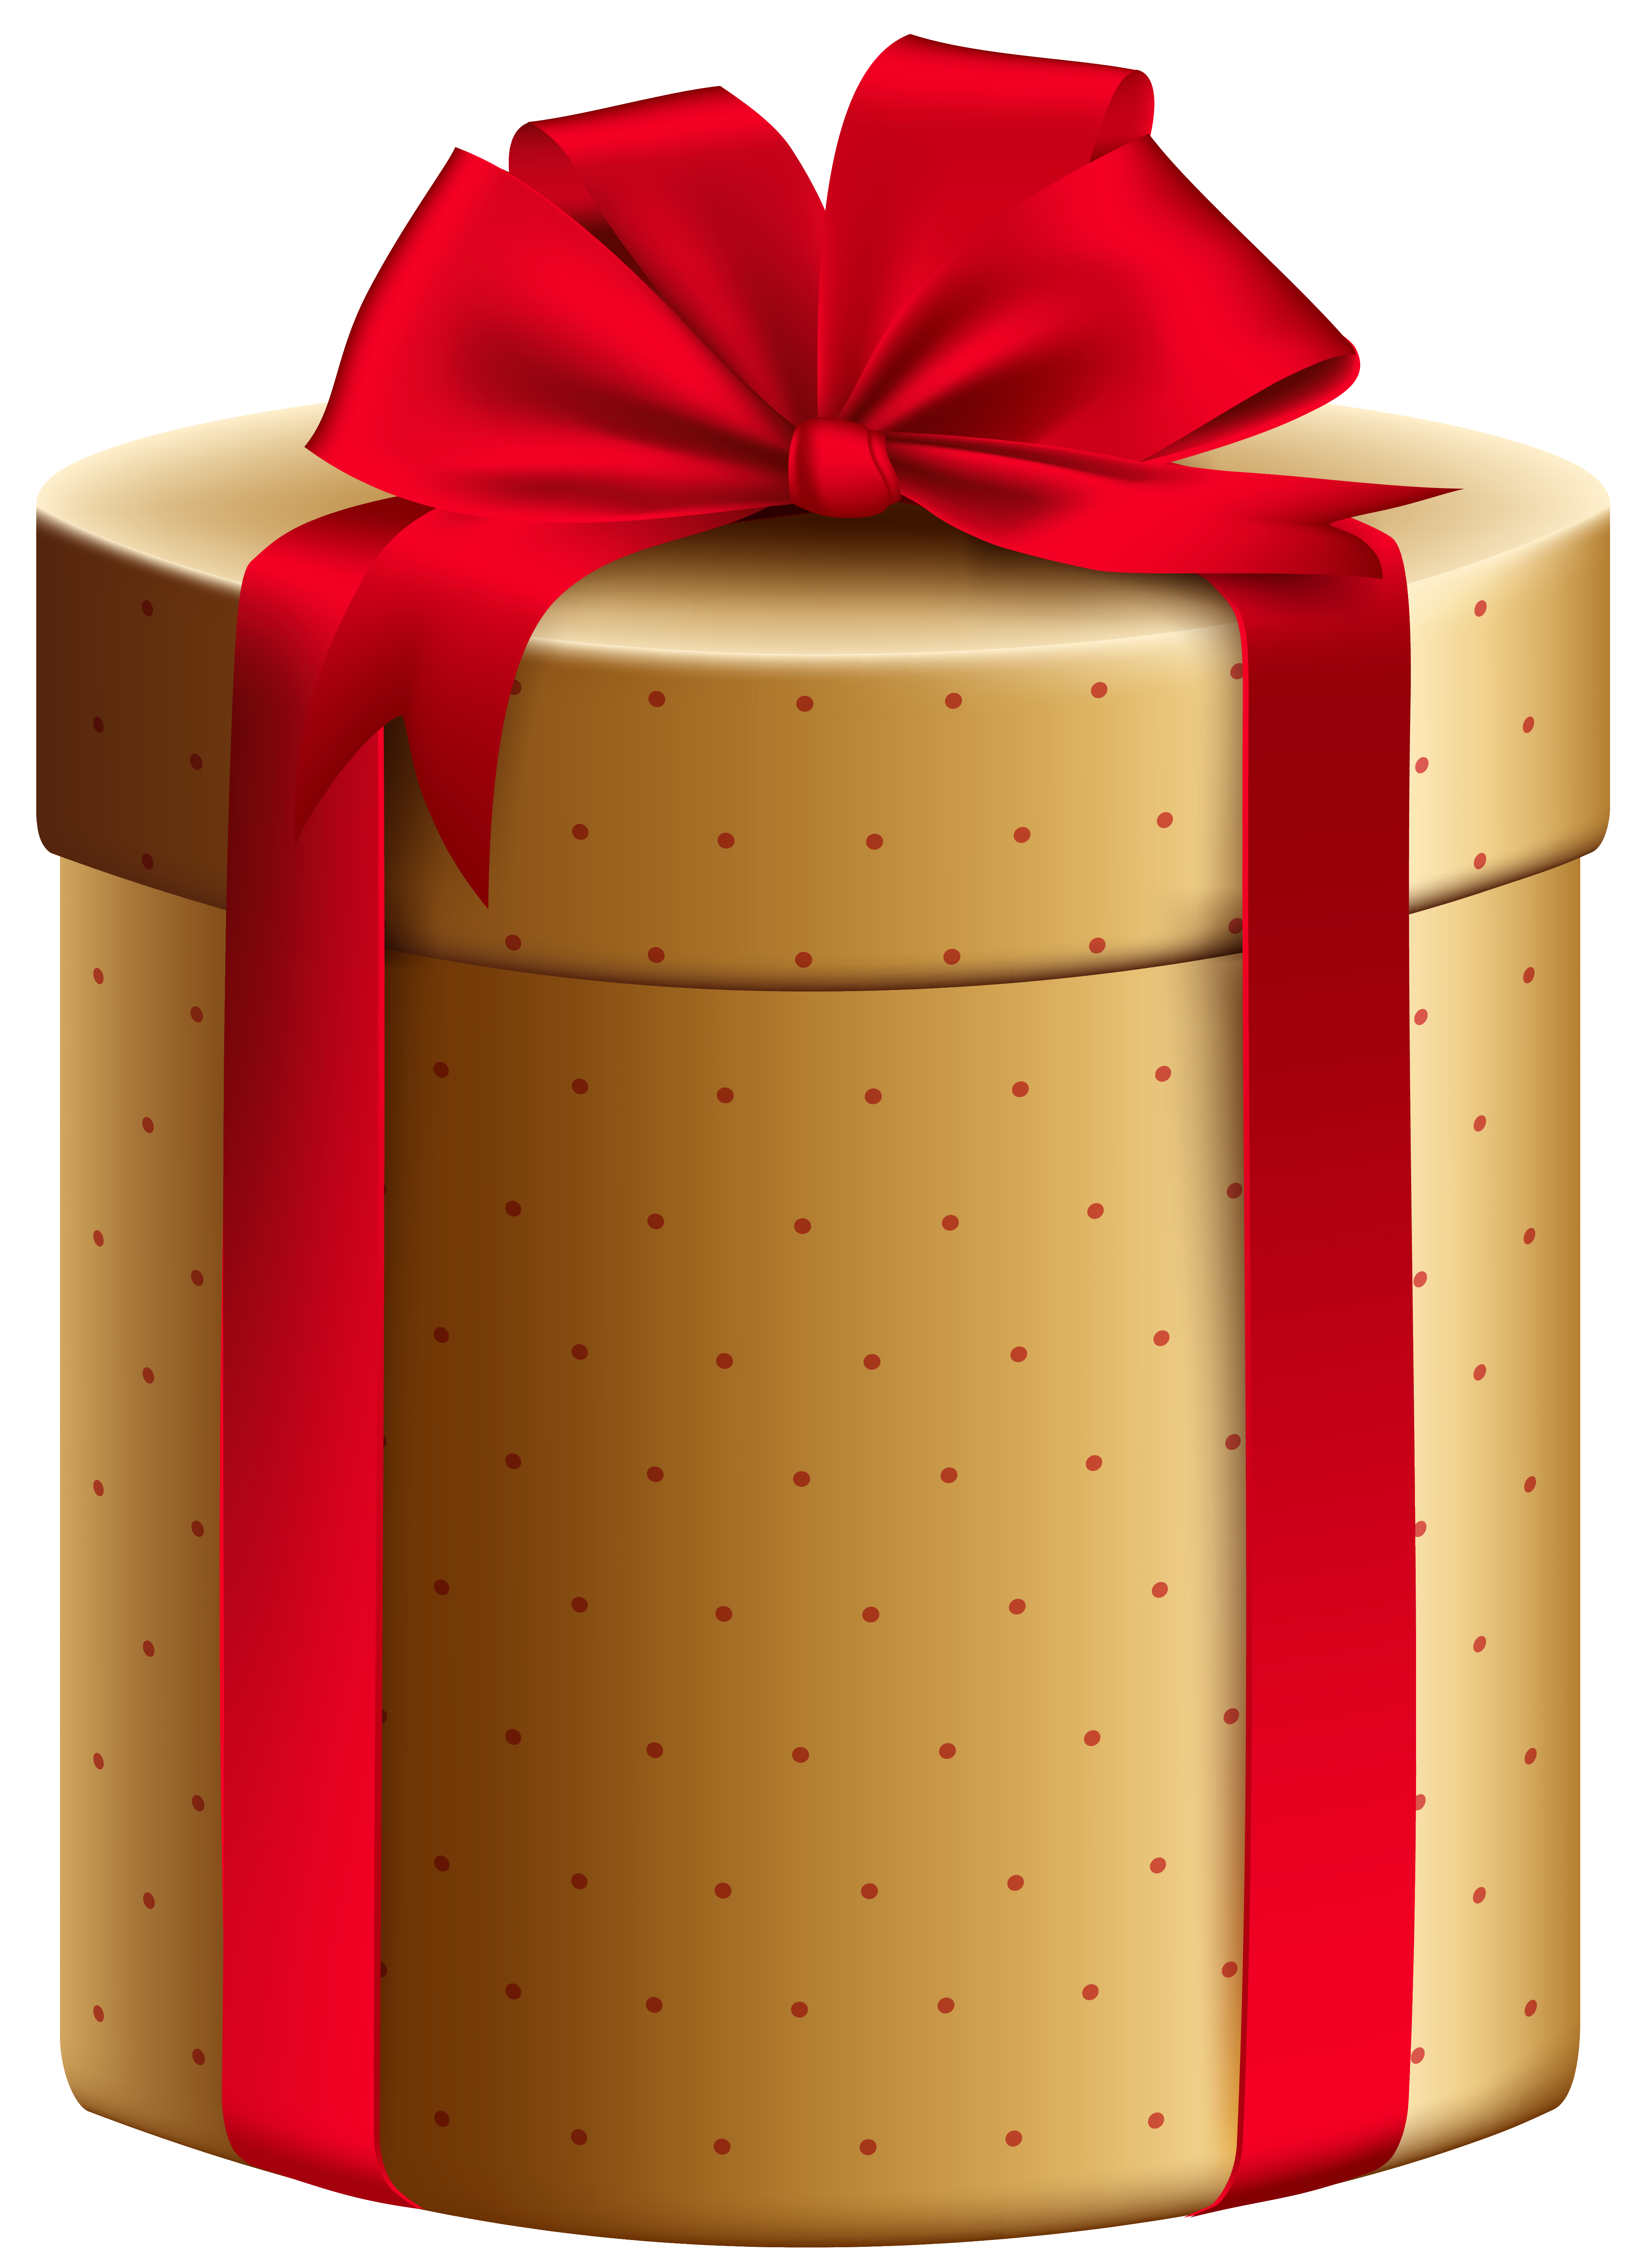 vector stock Red gift box png. Gifts clipart gold